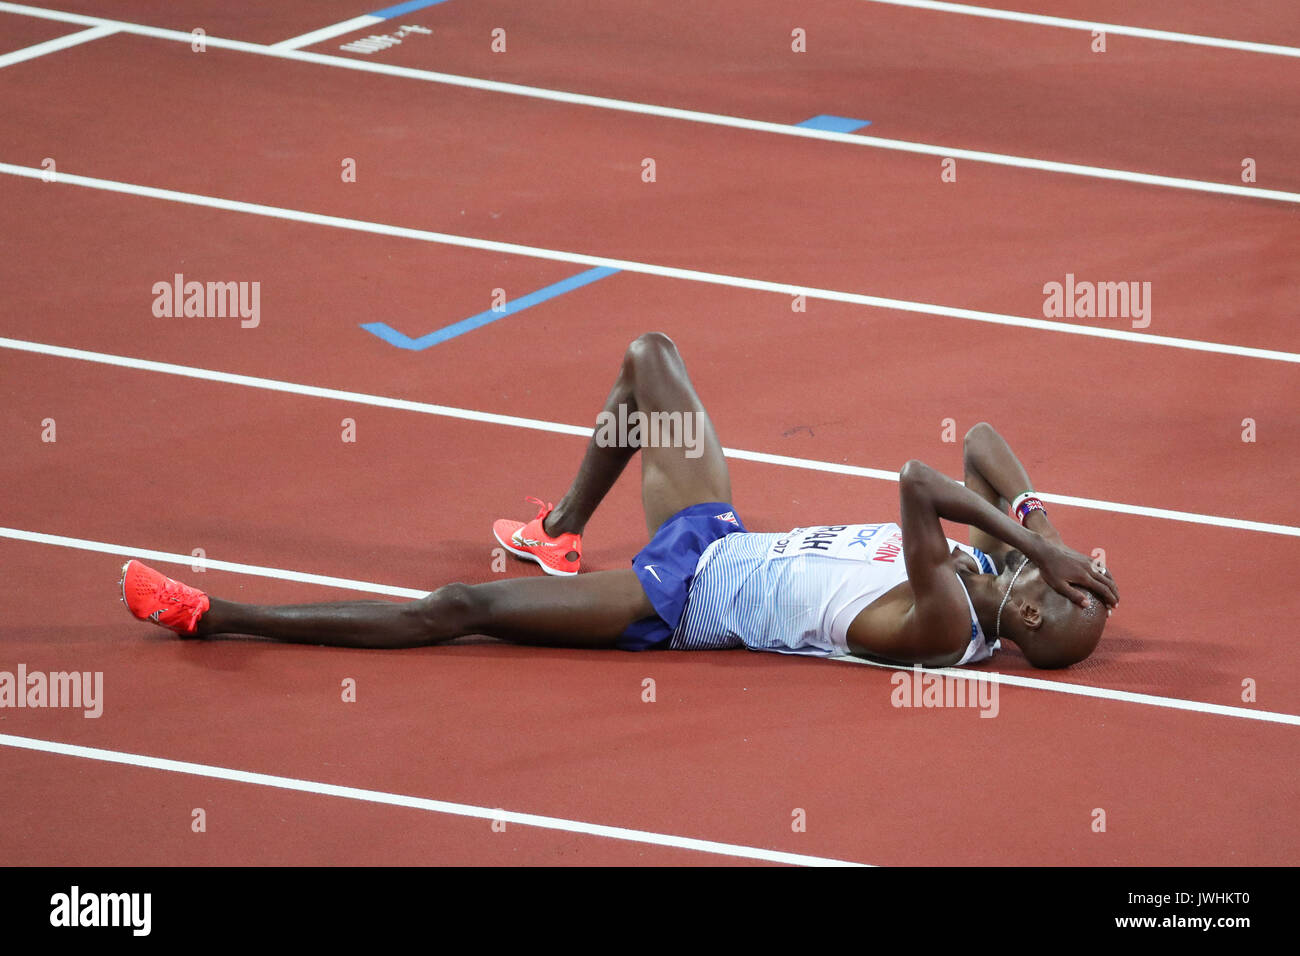 London, UK. 12th Aug, 2017.  an exhausted Mo Farah, Great Britain, lies on the track after winning silver in the men's 5000m final on day nine of the IAAF London 2017 world Championships at the London Stadium. Credit: Paul Davey/Alamy Live News - Stock Image